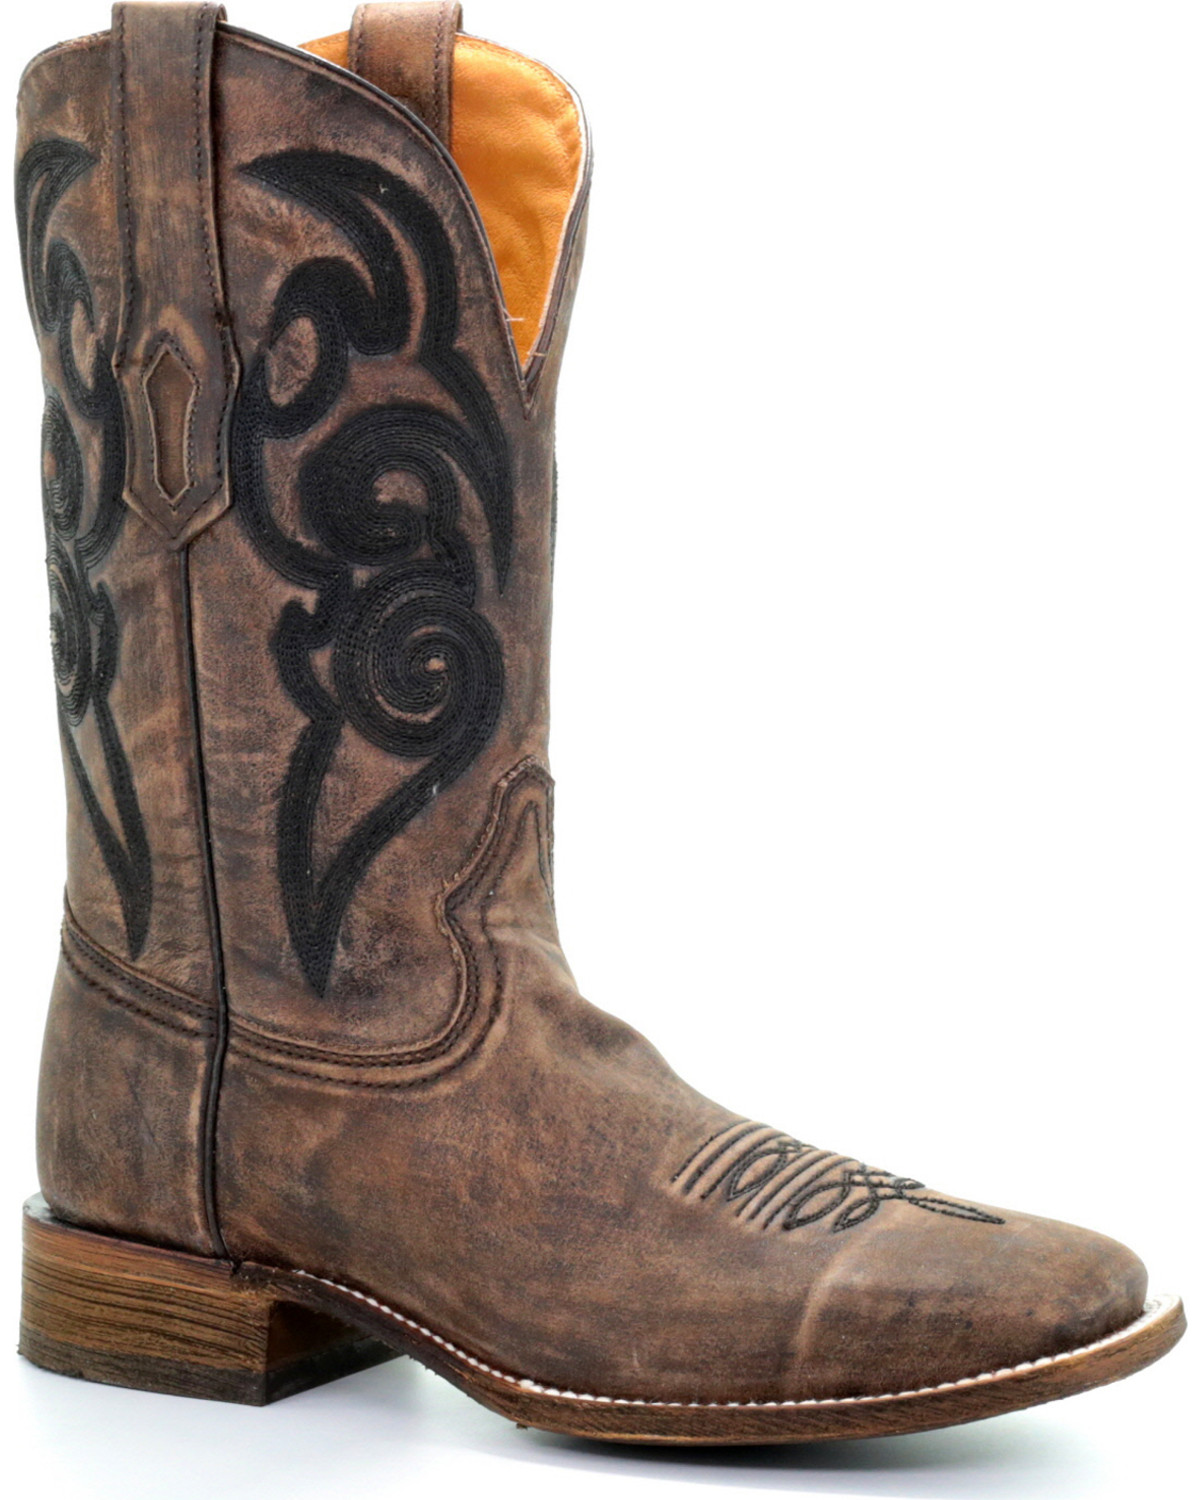 Rugged Embroidered Western Boots